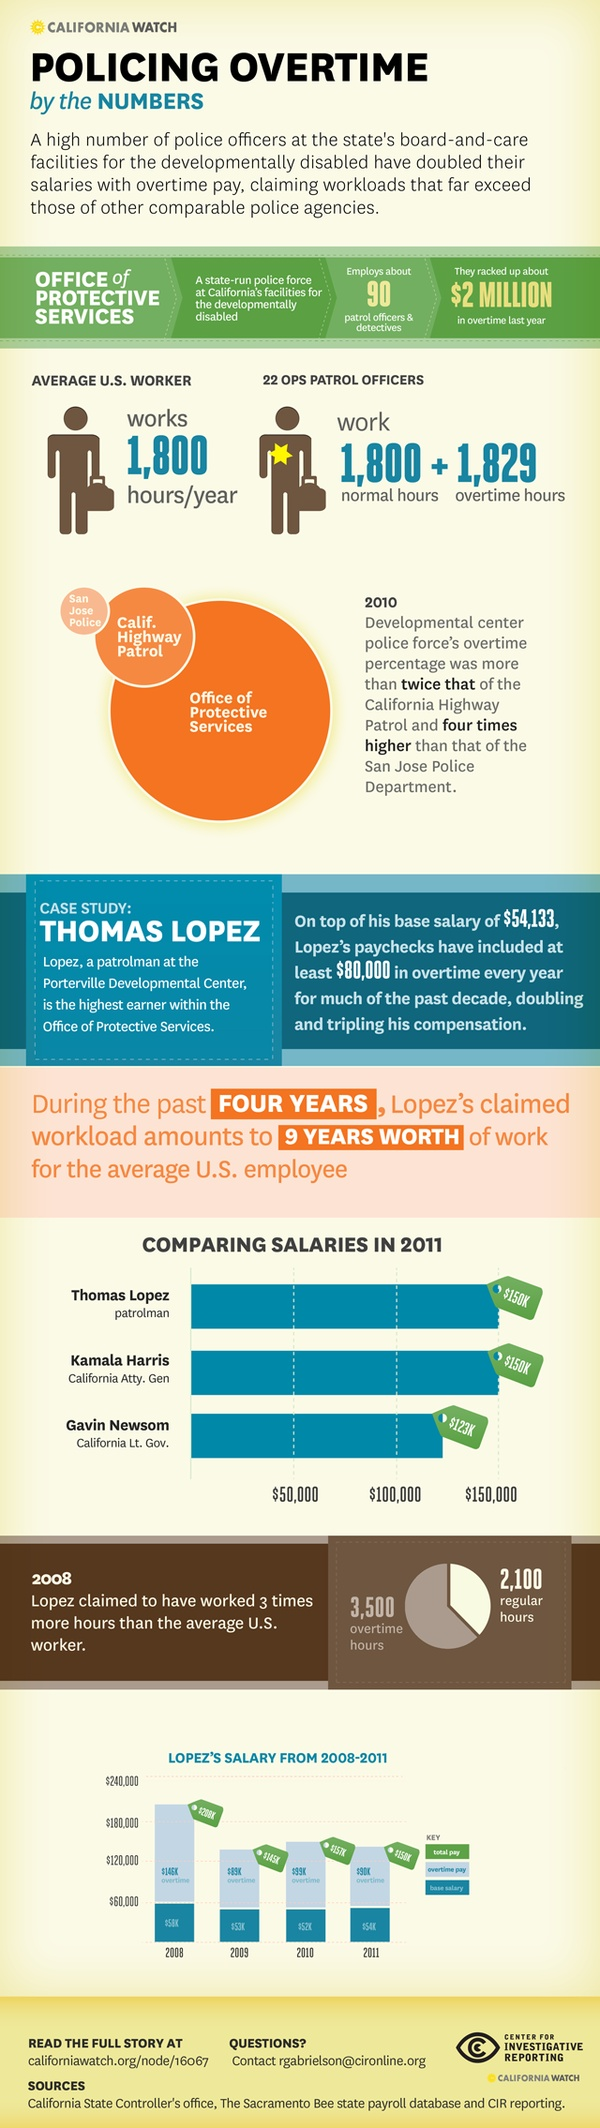 best ideas about police officer salary police infographic how does a police officer double his salary in a year california